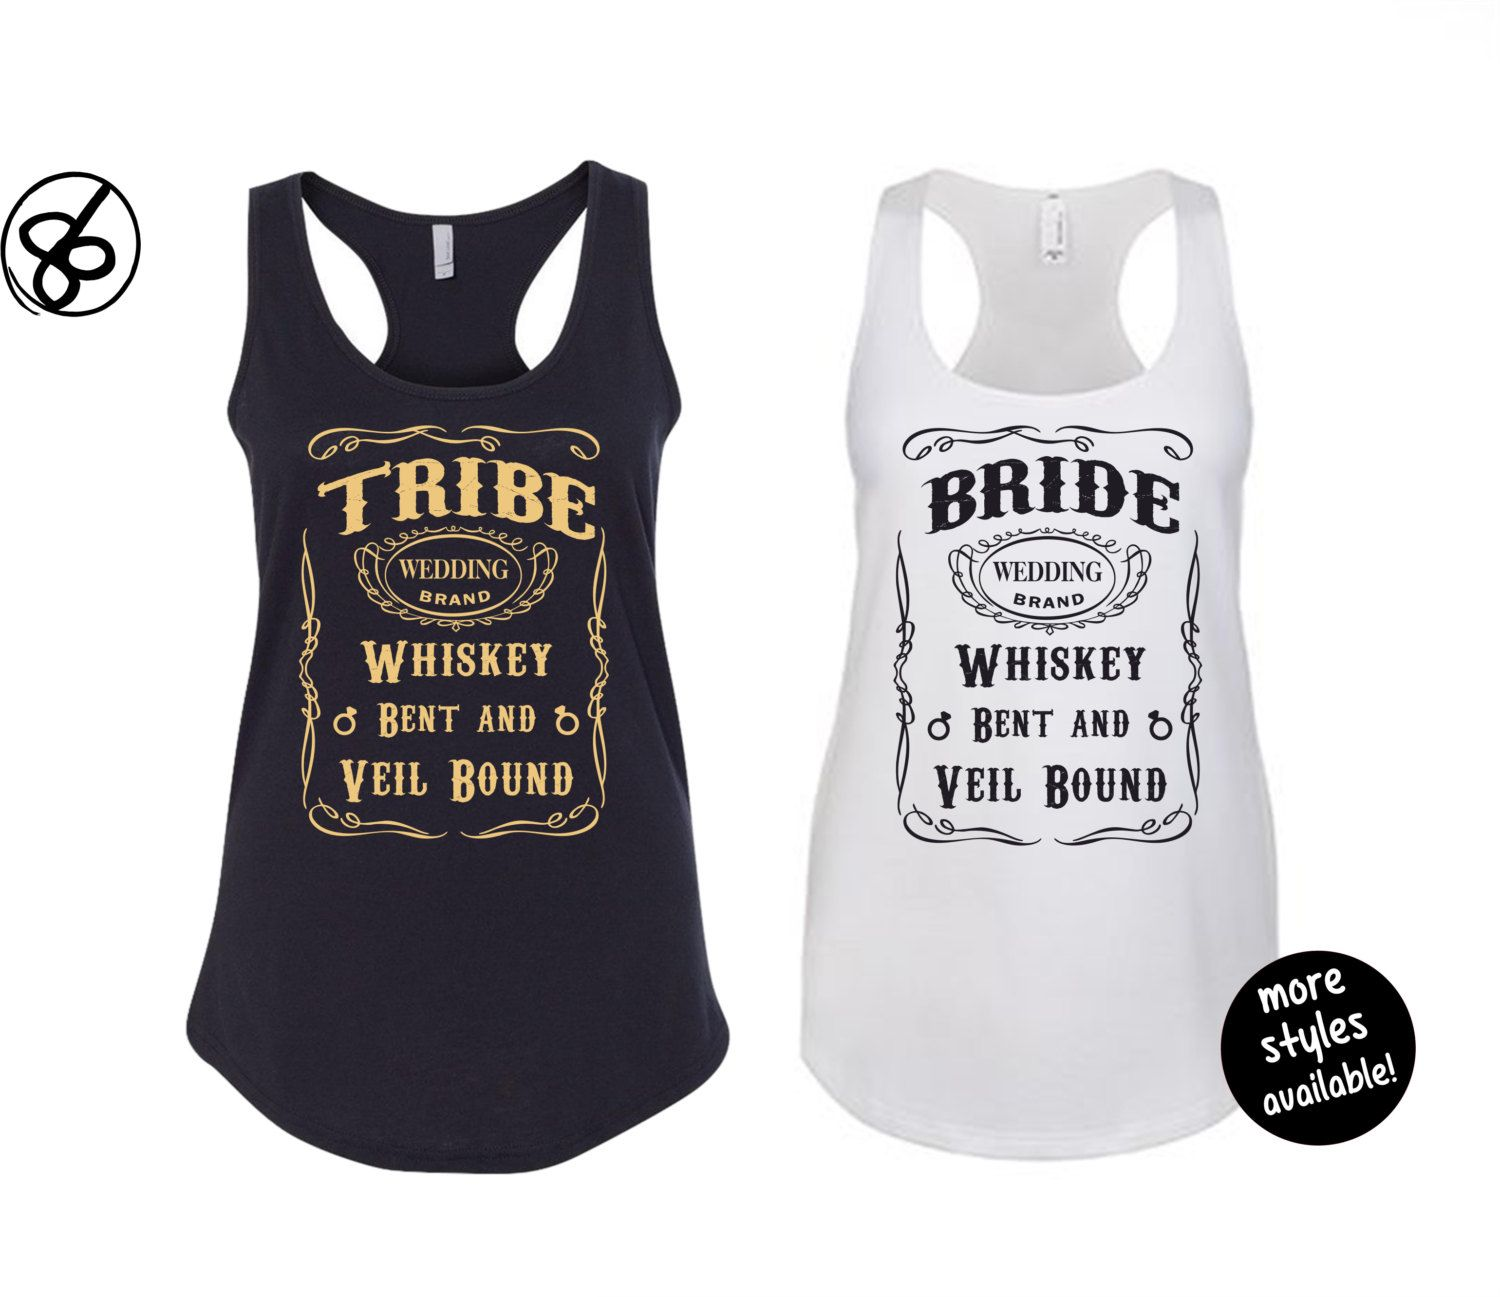 ecdd3a6ded Bride Tribe Country Bachelorette Party Tank Top - Whiskey Bent and Veil  Bound Tank Top -